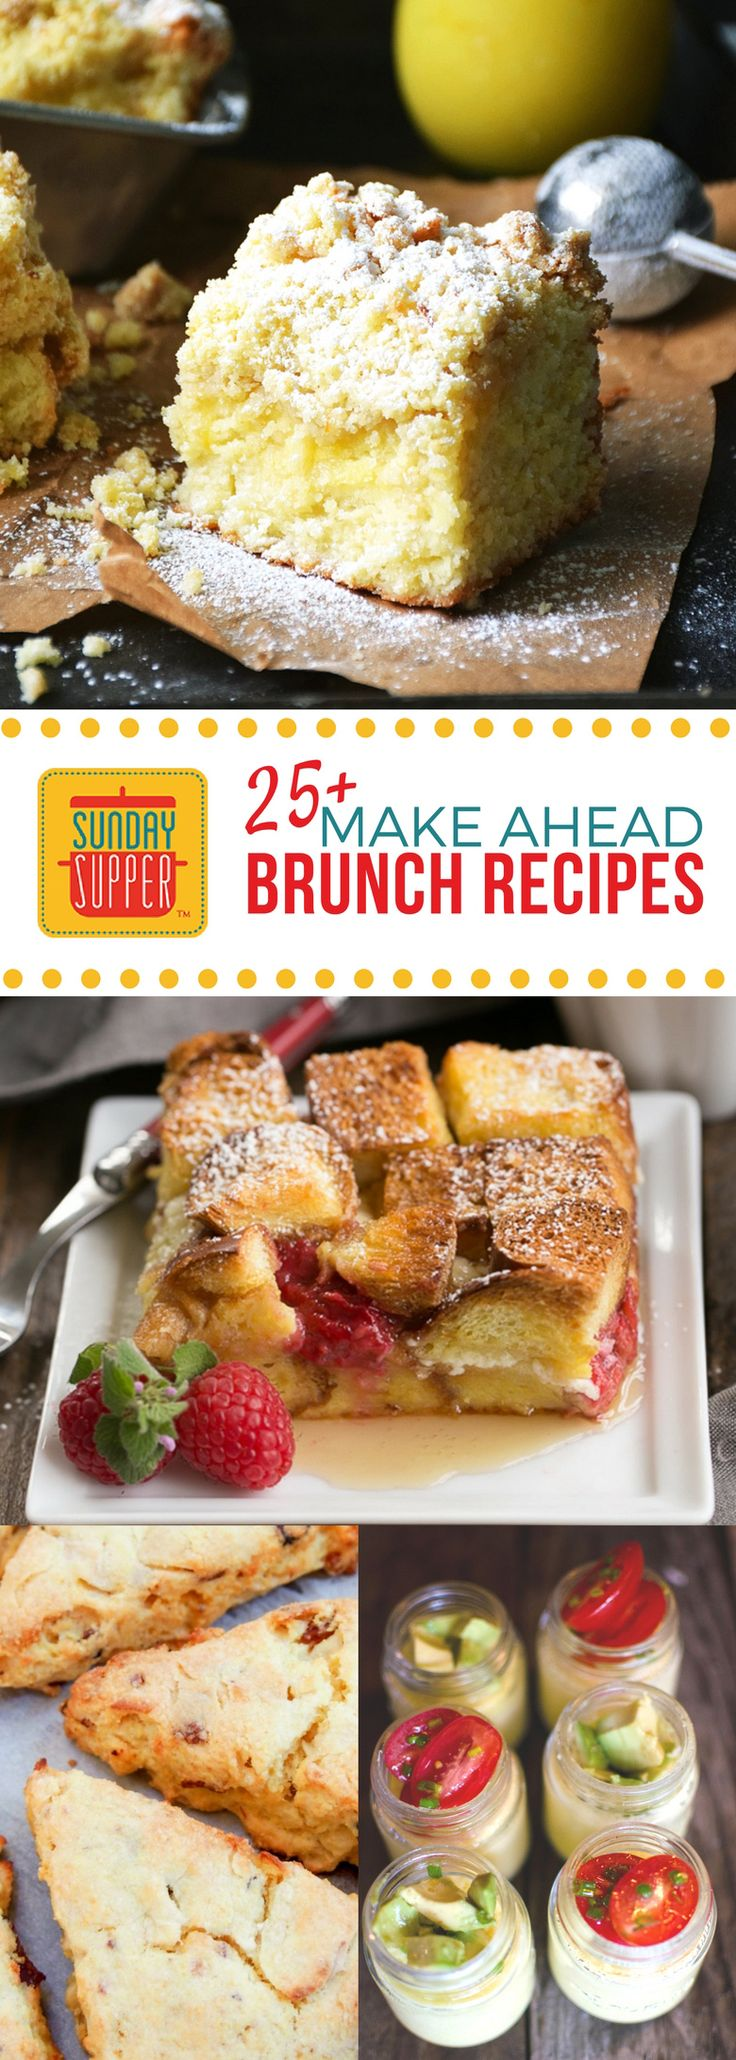 Make Ahead Sunday Supper Brunch Recipes, this list of #SundaySupper recipes is perfect for when you want to throw a brunch and sleep in! Whether you prefer sweet or savory brunch recipes this collection has something for everyone!